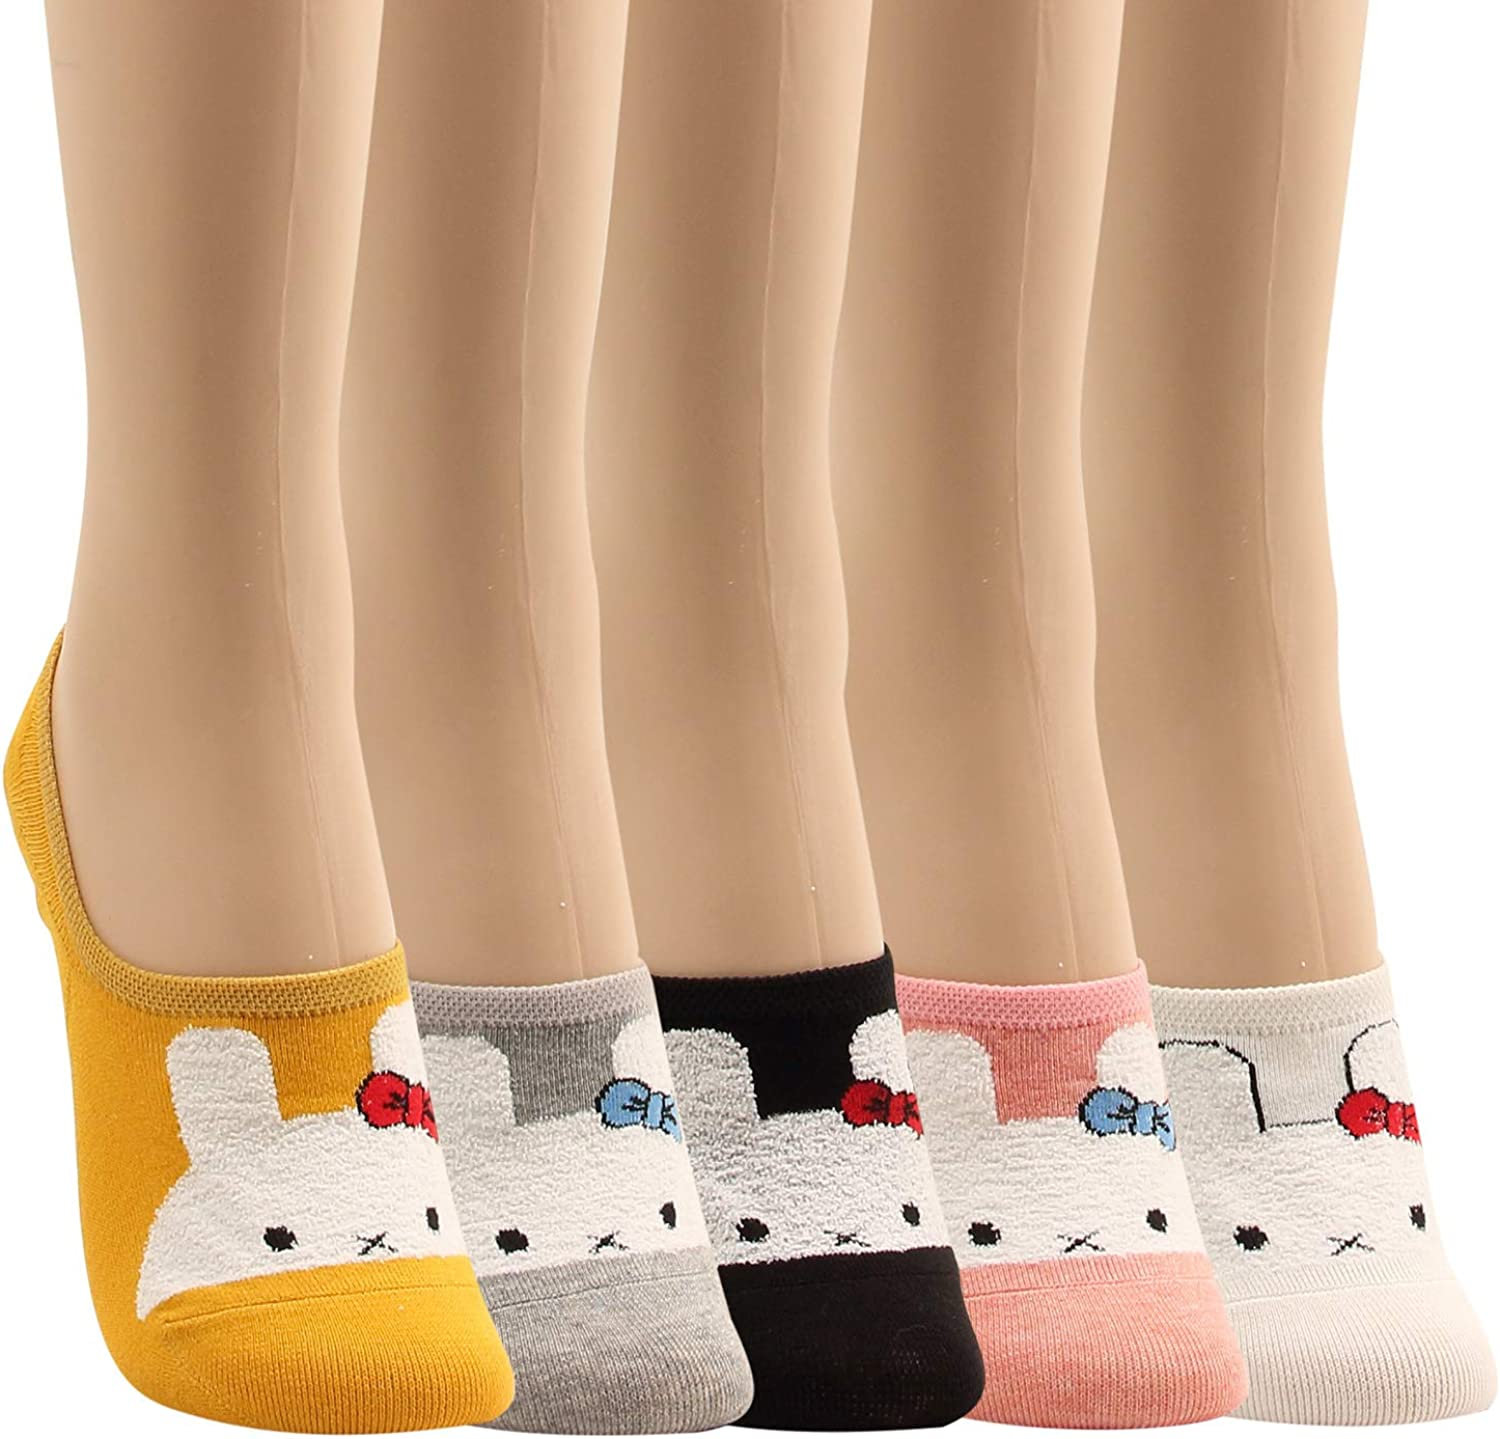 WOWFOOT Women Animal Design No-Show Casual Liner Socks Character Print Non Slip Flat Boat Line 4 Pair